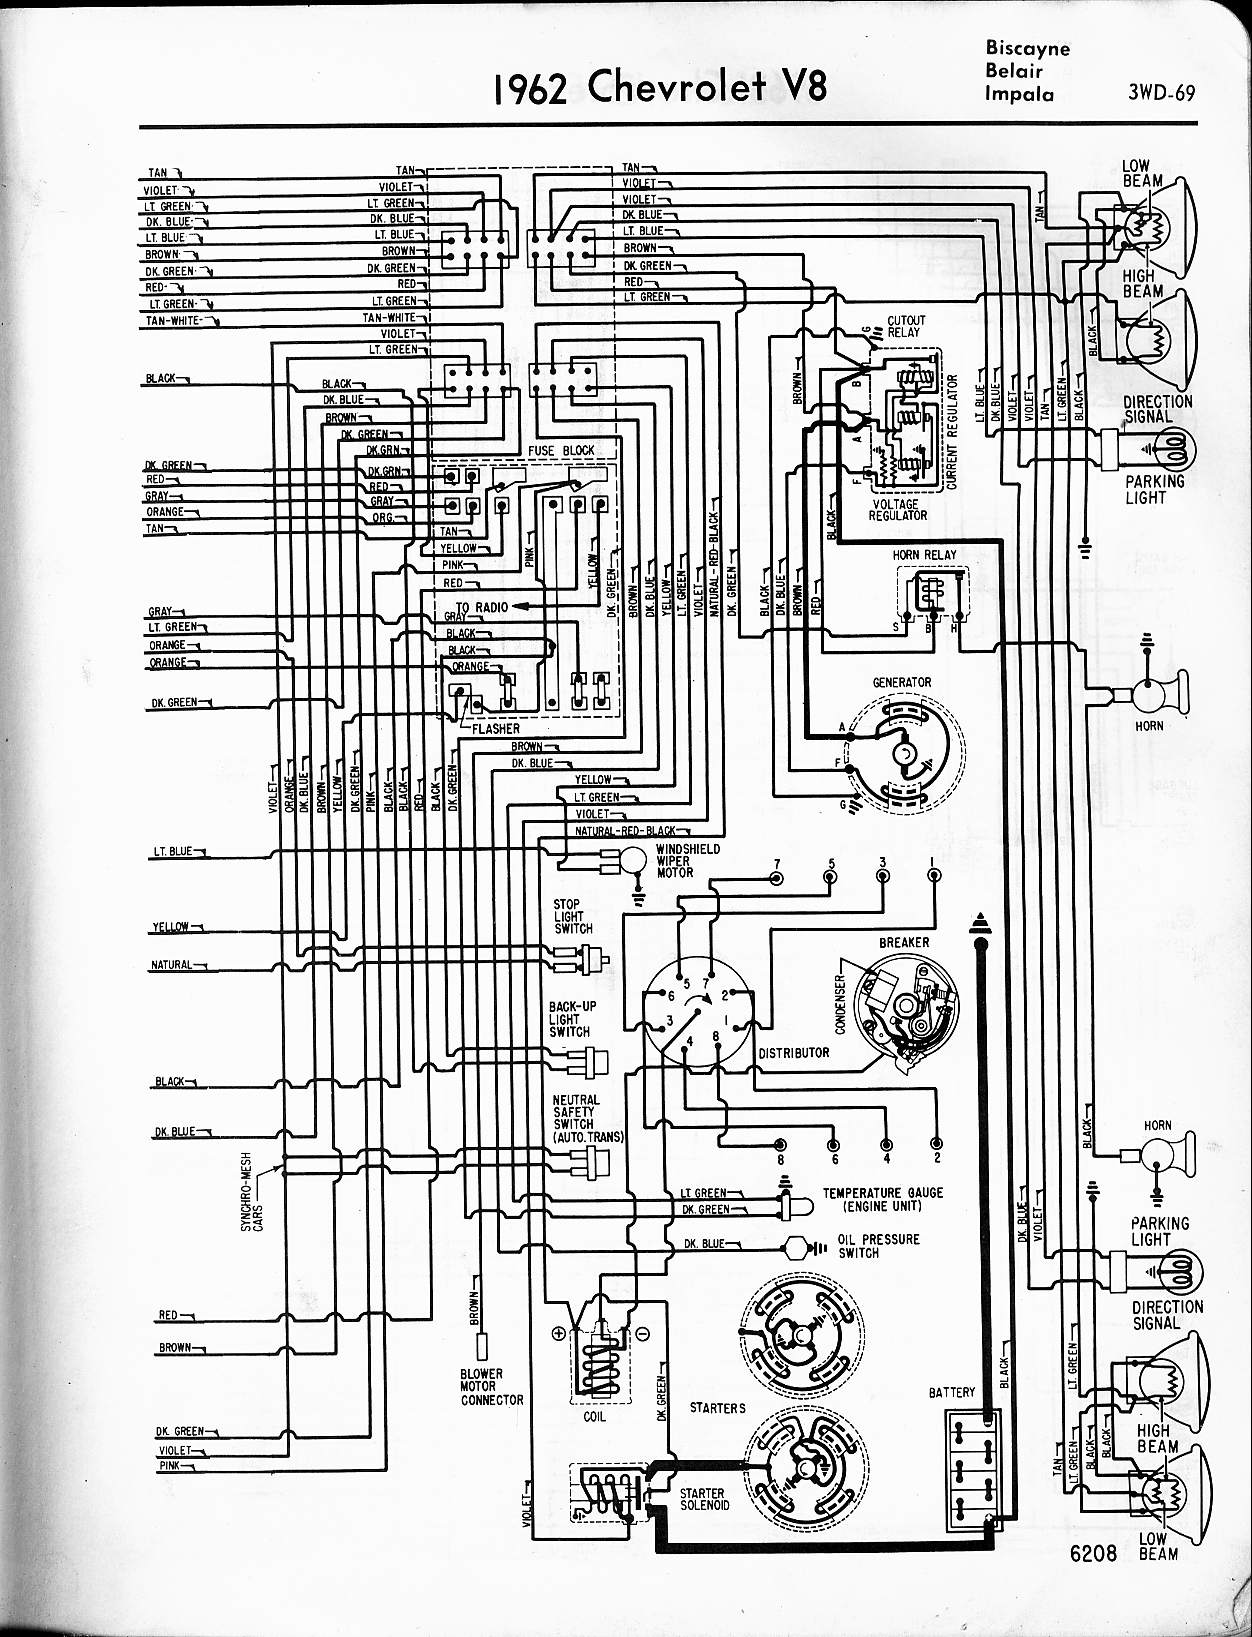 1966 Corvair Turn Signal Wiring Diagram Books Of Mustang With Fender Tbx 66 Just Data Rh Ag Skiphire Co Uk